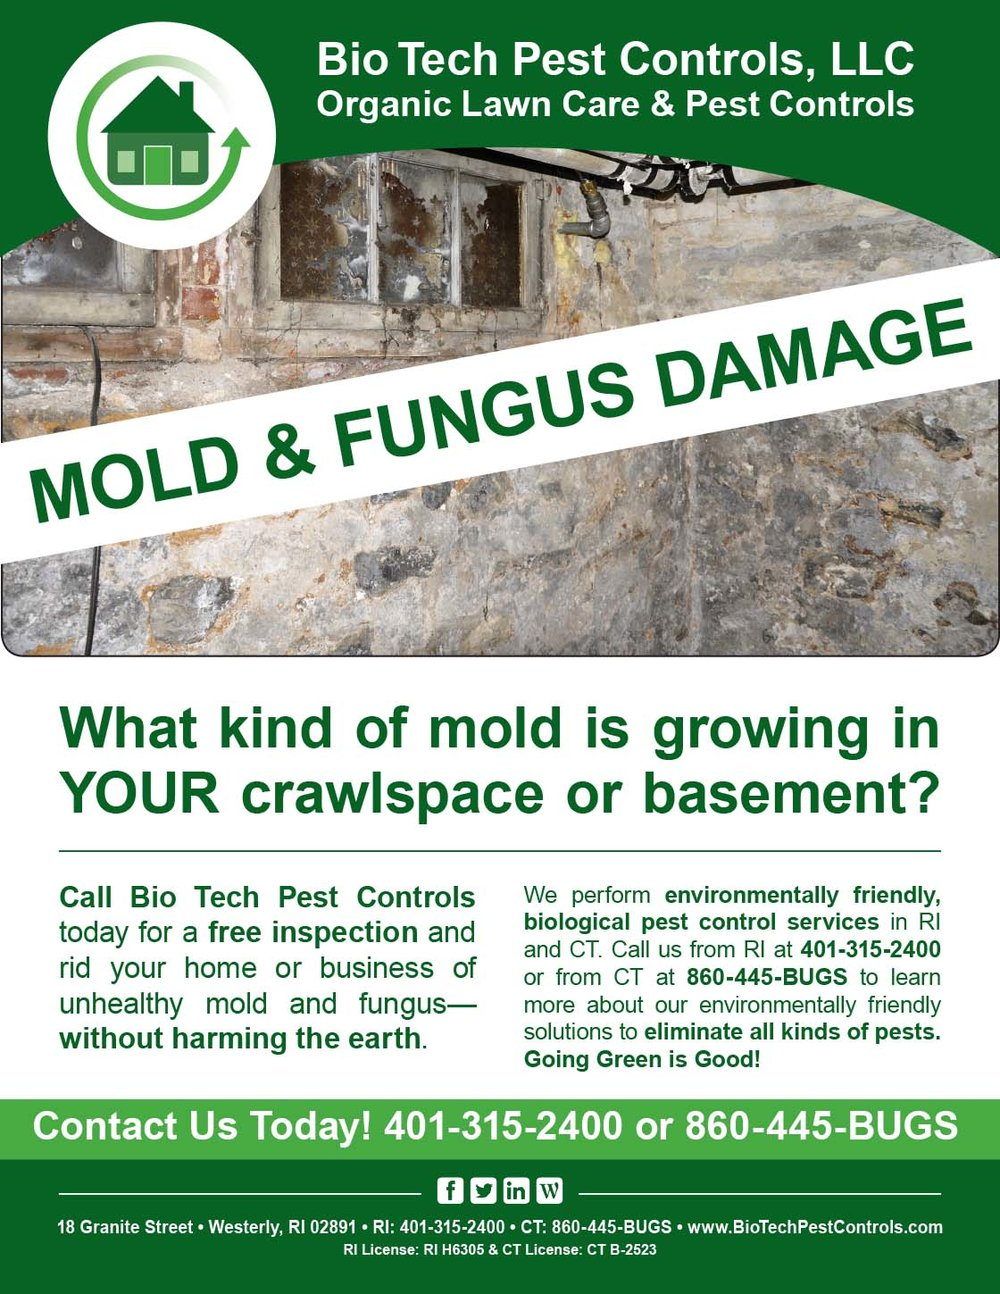 Mold_and_Fungus_Flyer.jpg